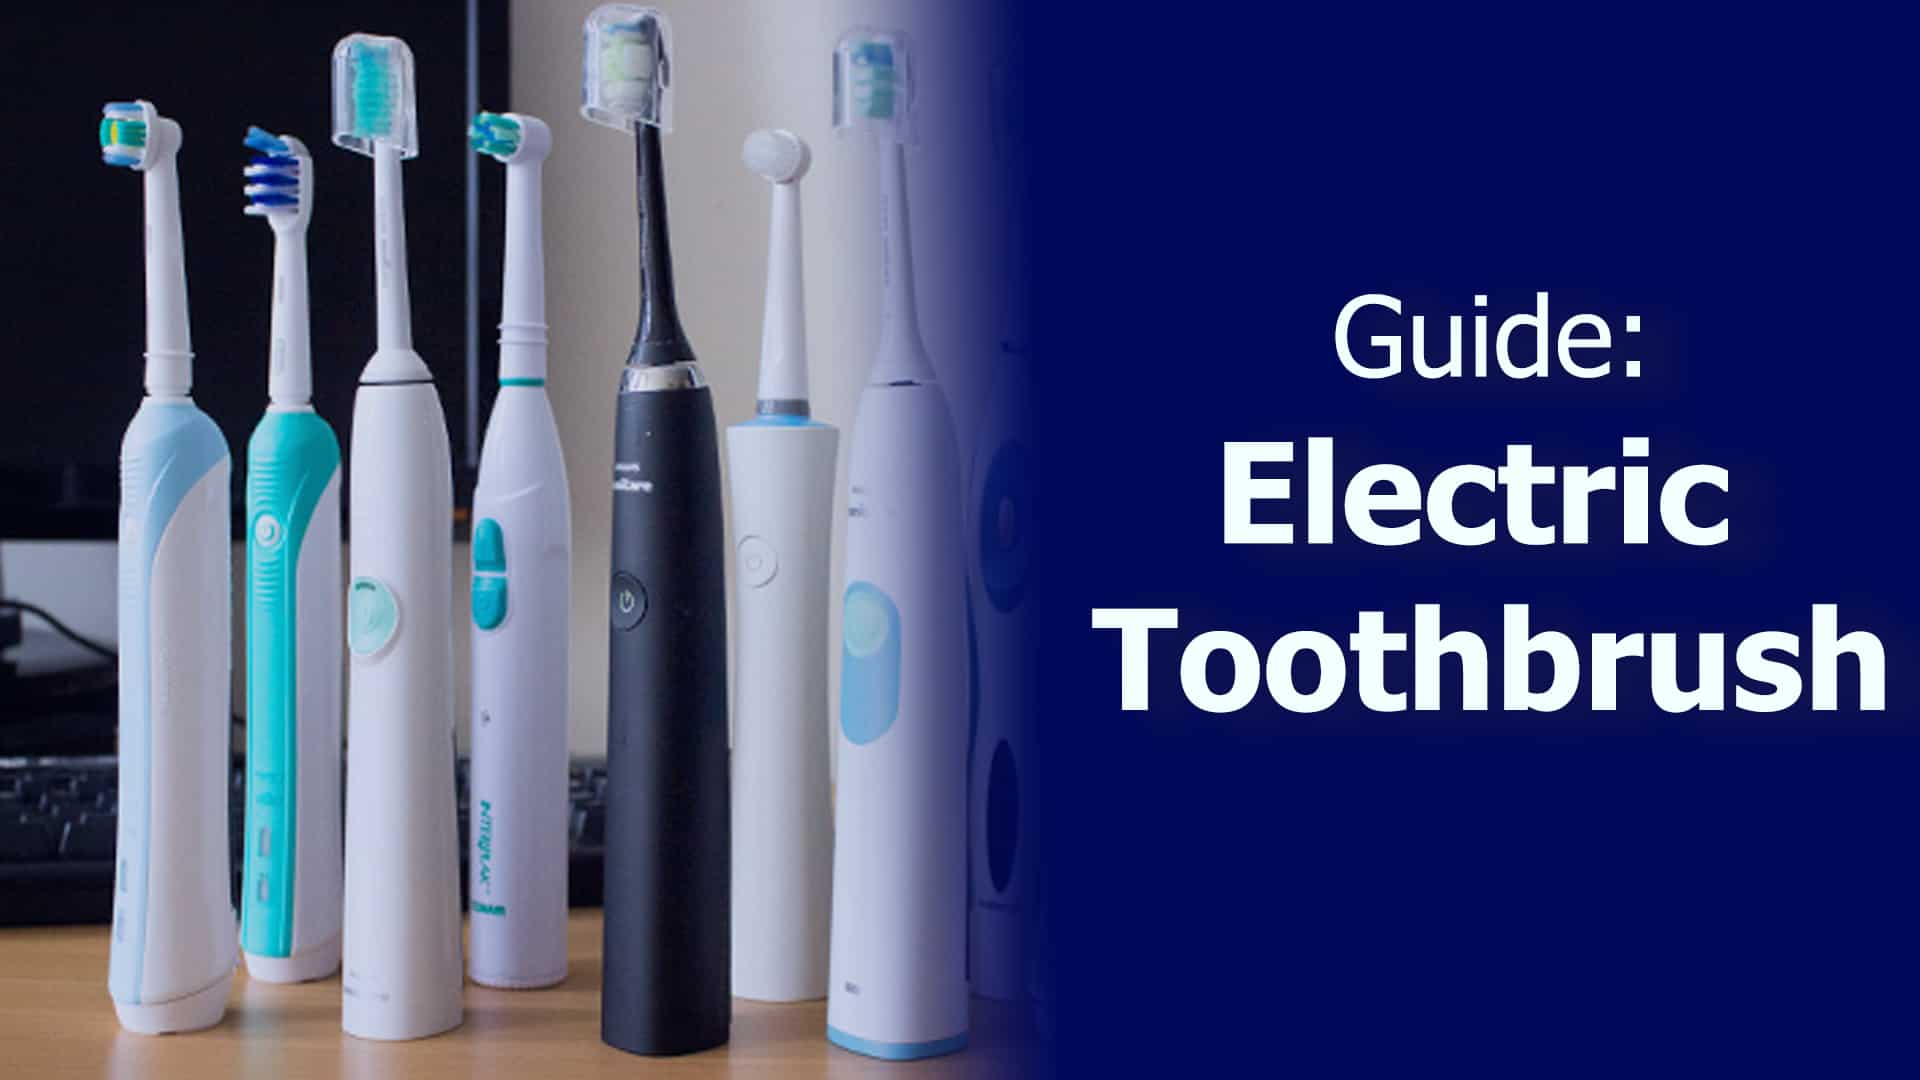 Buying Guide Electric Toothbrush